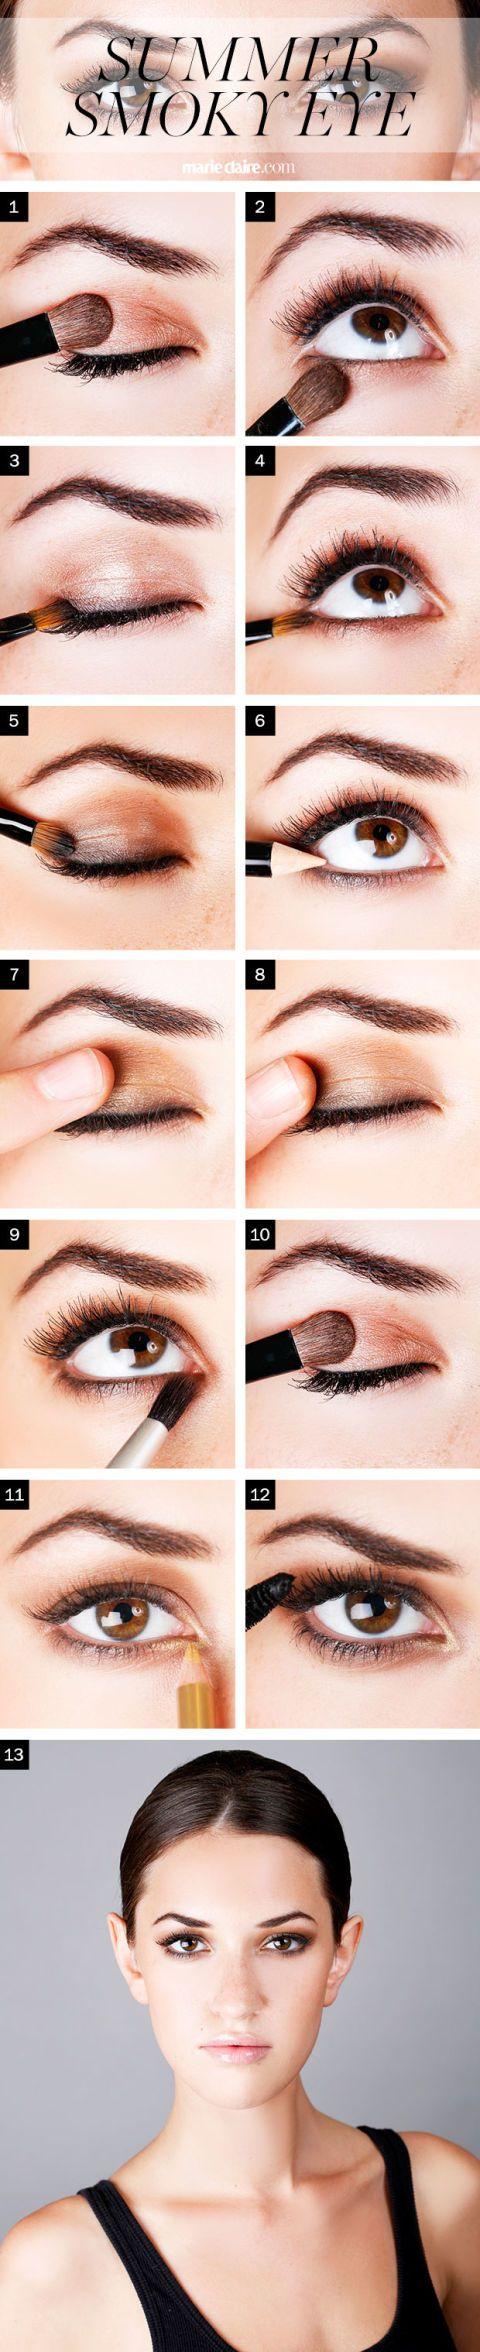 Metallic Makeup-How To, Step By Step, Photos